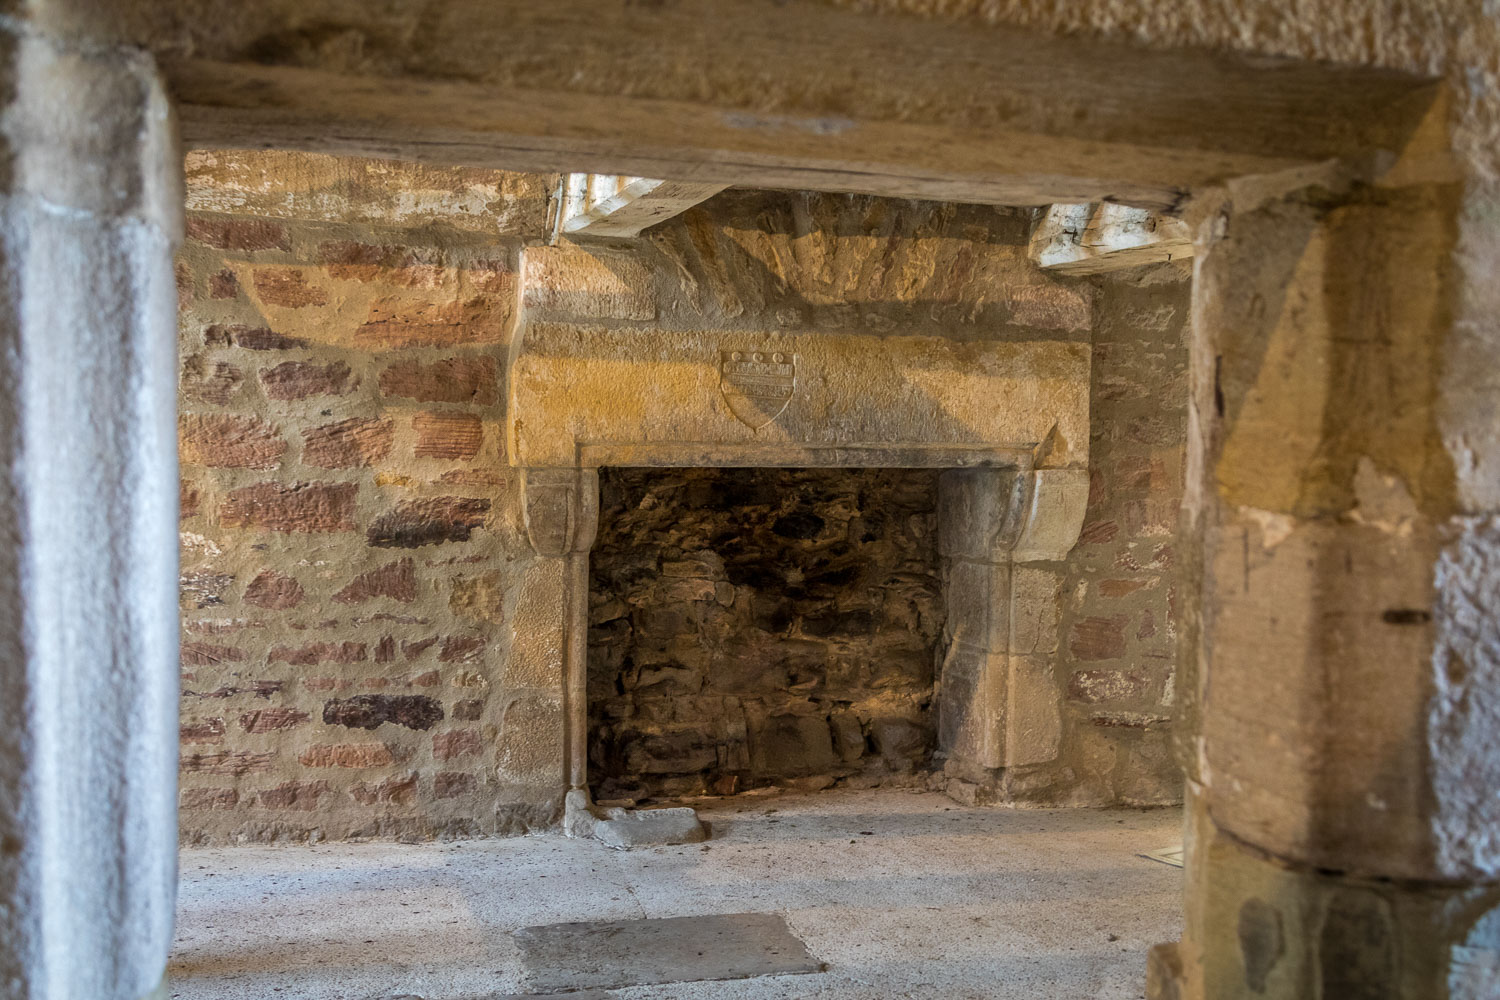 Corbridge walk, Aydon Castle fireplace